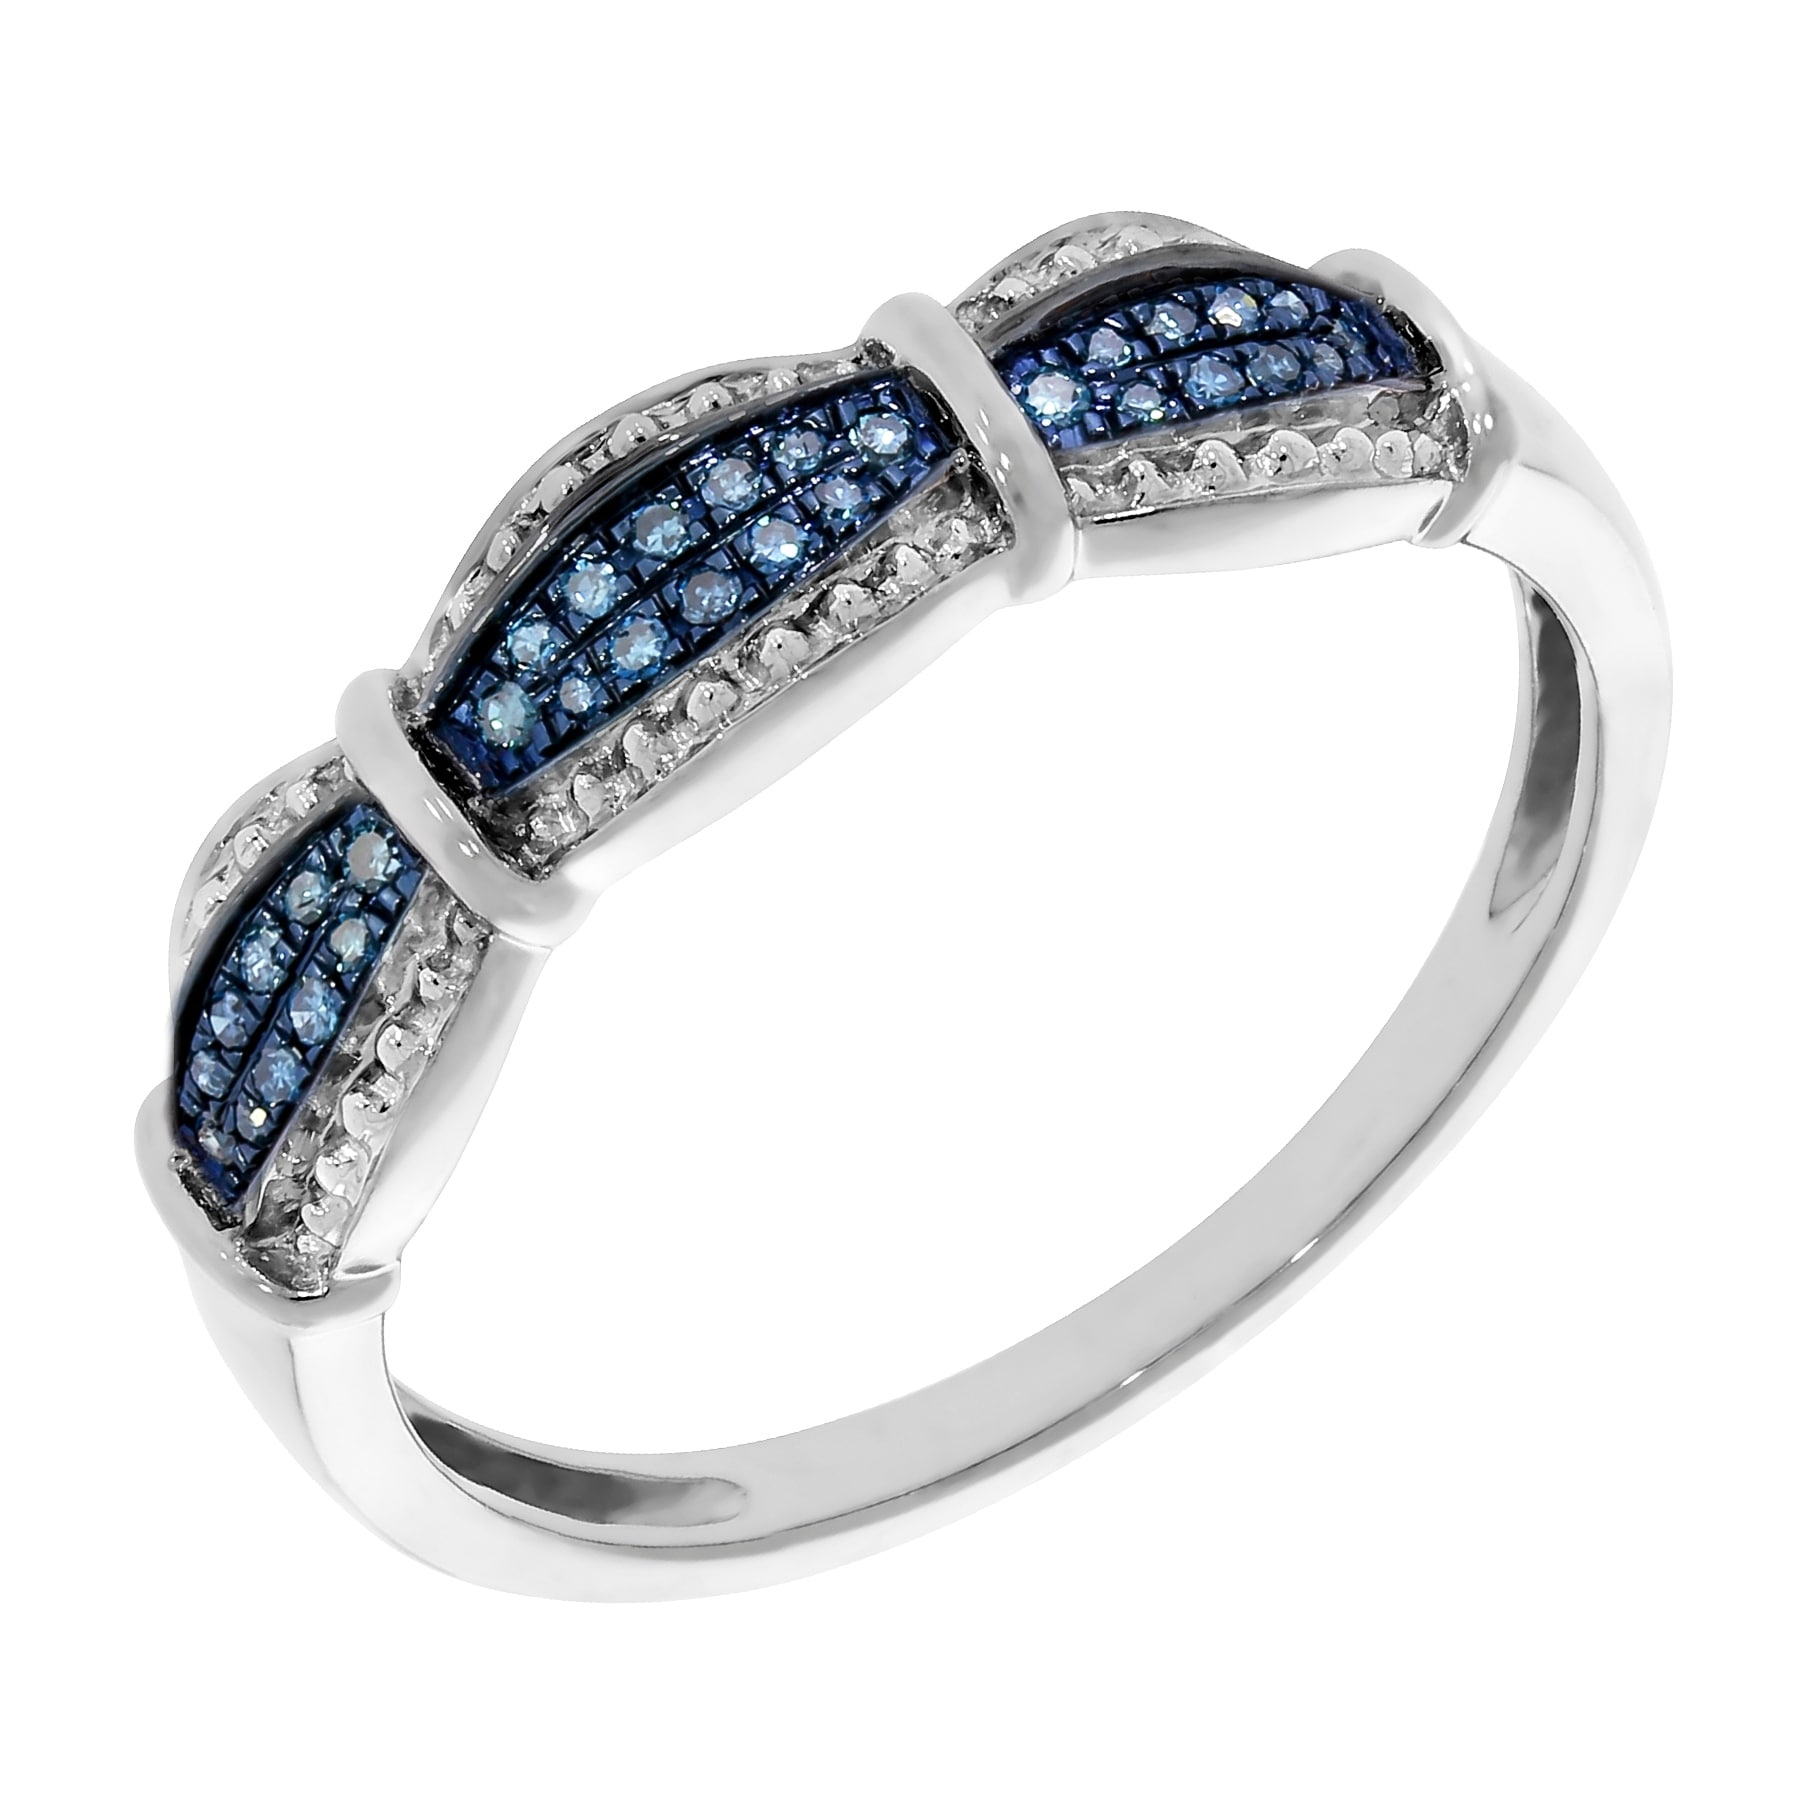 Prism Jewel 0.10Ct Round Brilliant Cut Blue Diamond Half Eternity Ring - Thumbnail 0